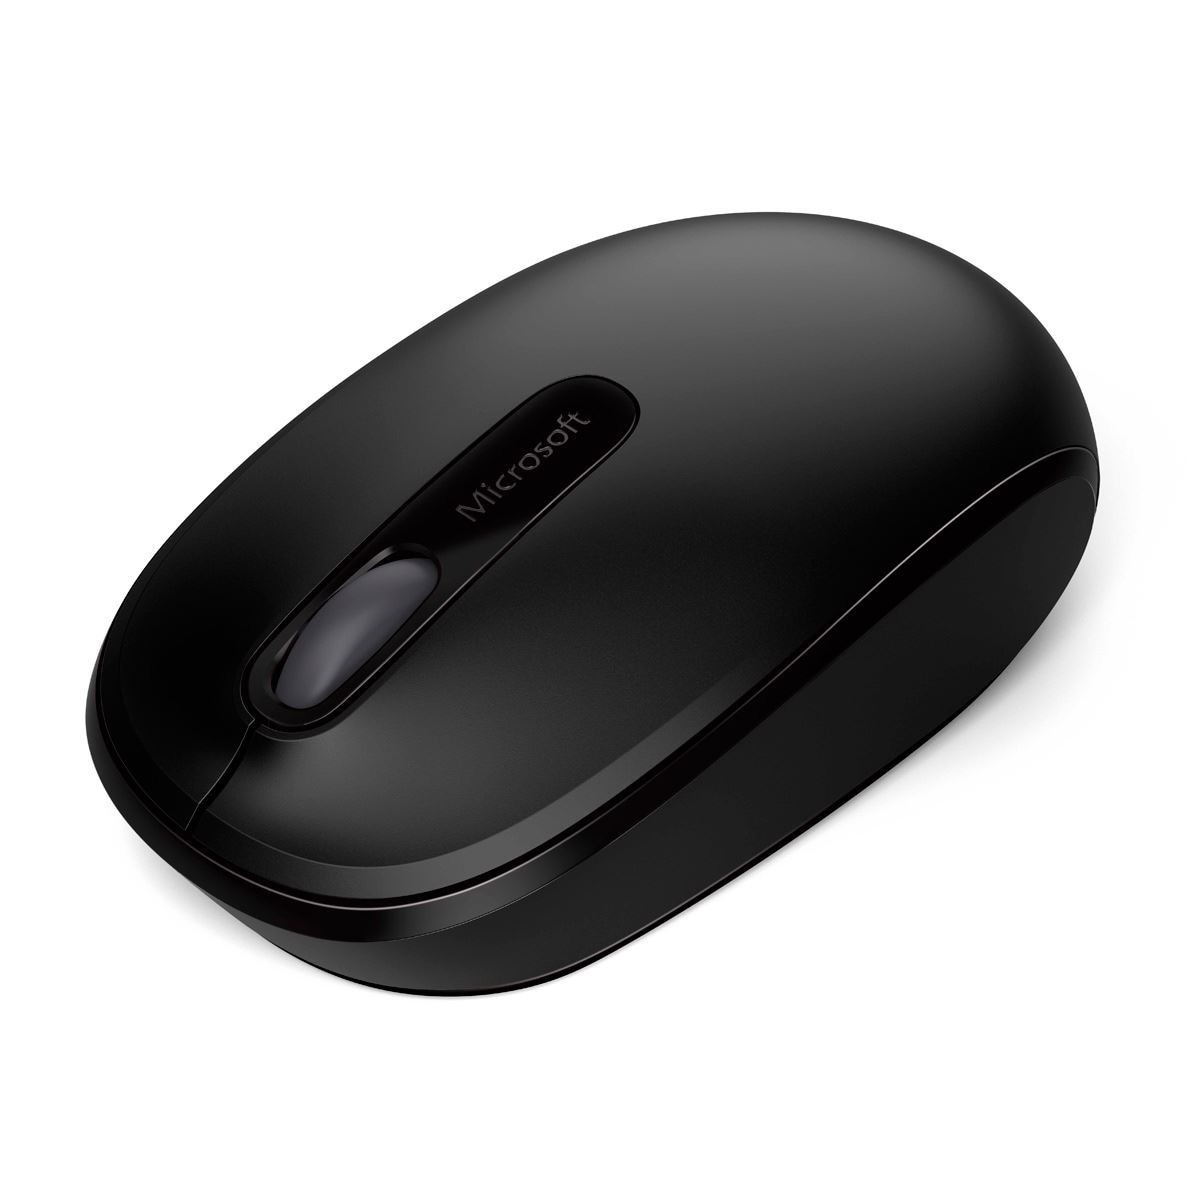 Mouse microsoft 1850 negro wireles w  - Sanborns